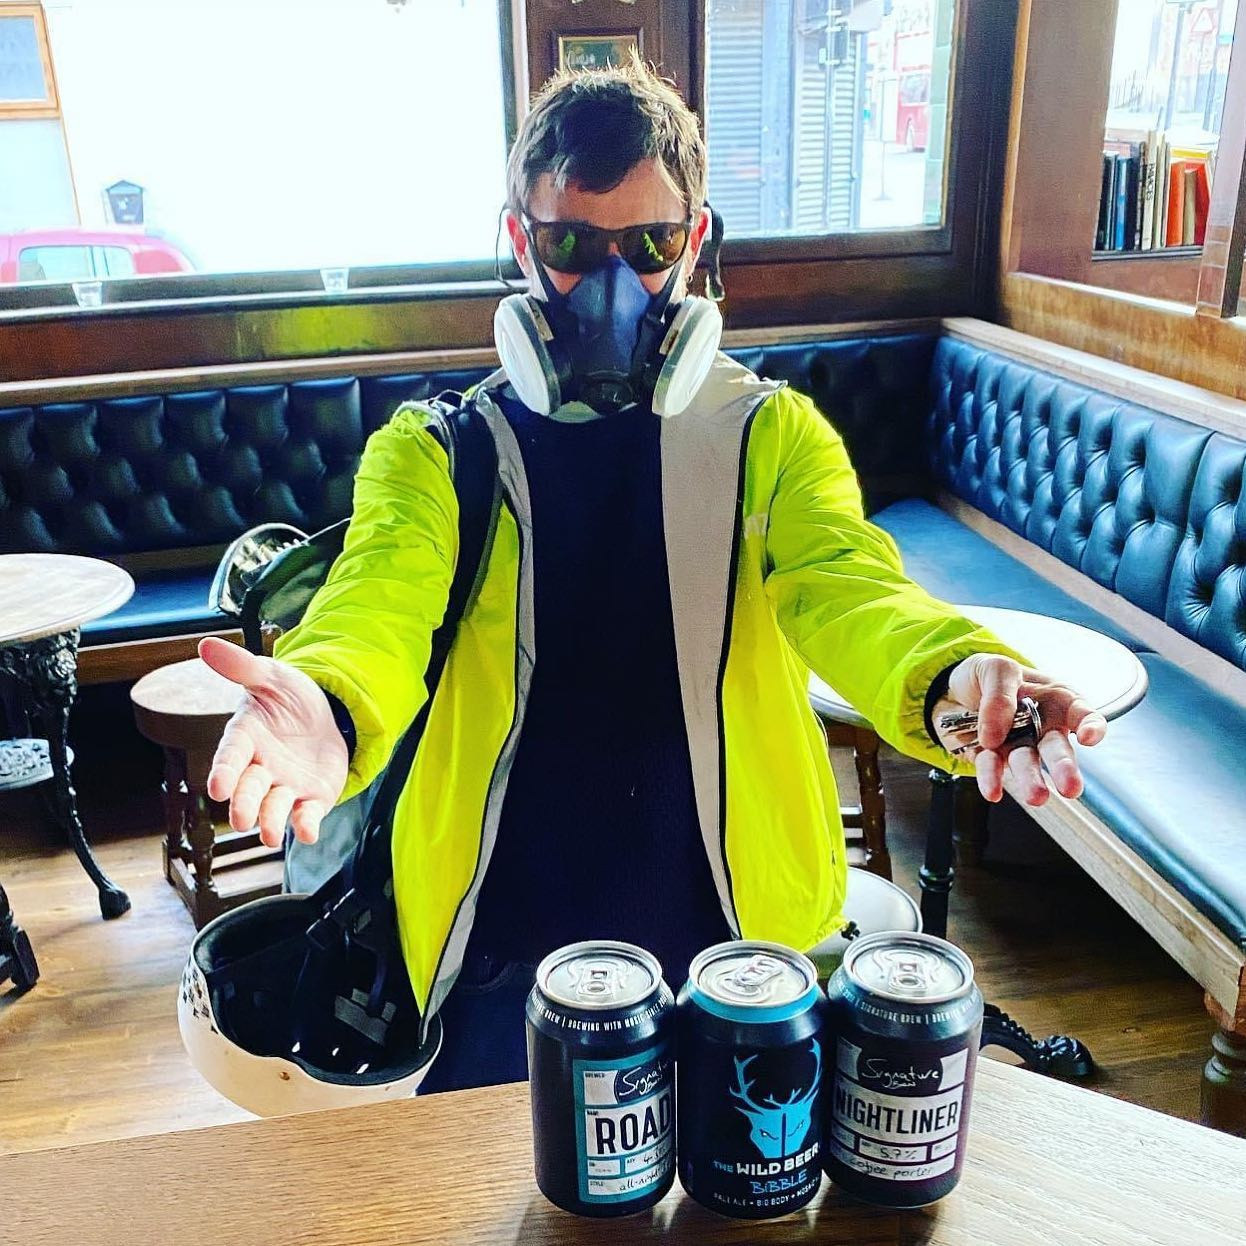 Happy Easter everybody! 🐰 🥚 🐣 🐥 🍫  This was our first takeaway beer customer, exactly 1 year ago today and we can't wait to start serving again from next Monday 12th. Not long now people, we're nearly there 👍🏼 🍻🦙🎉🍻🦙🎉🍻🦙🎉 #lockdown2021 #lockdownlife #lockdown2020 #takeawaybeers #lockdownpub #pubsoflondon #pubsofinstagram #londonpubs #craftbeer #craftbeerlover #supportlocal #nearlythere #lockdownnearlyover #freedom #islington #hackney #canonbury #haggerston #angel #essexroad #upperstreet #pubs #pubstagram